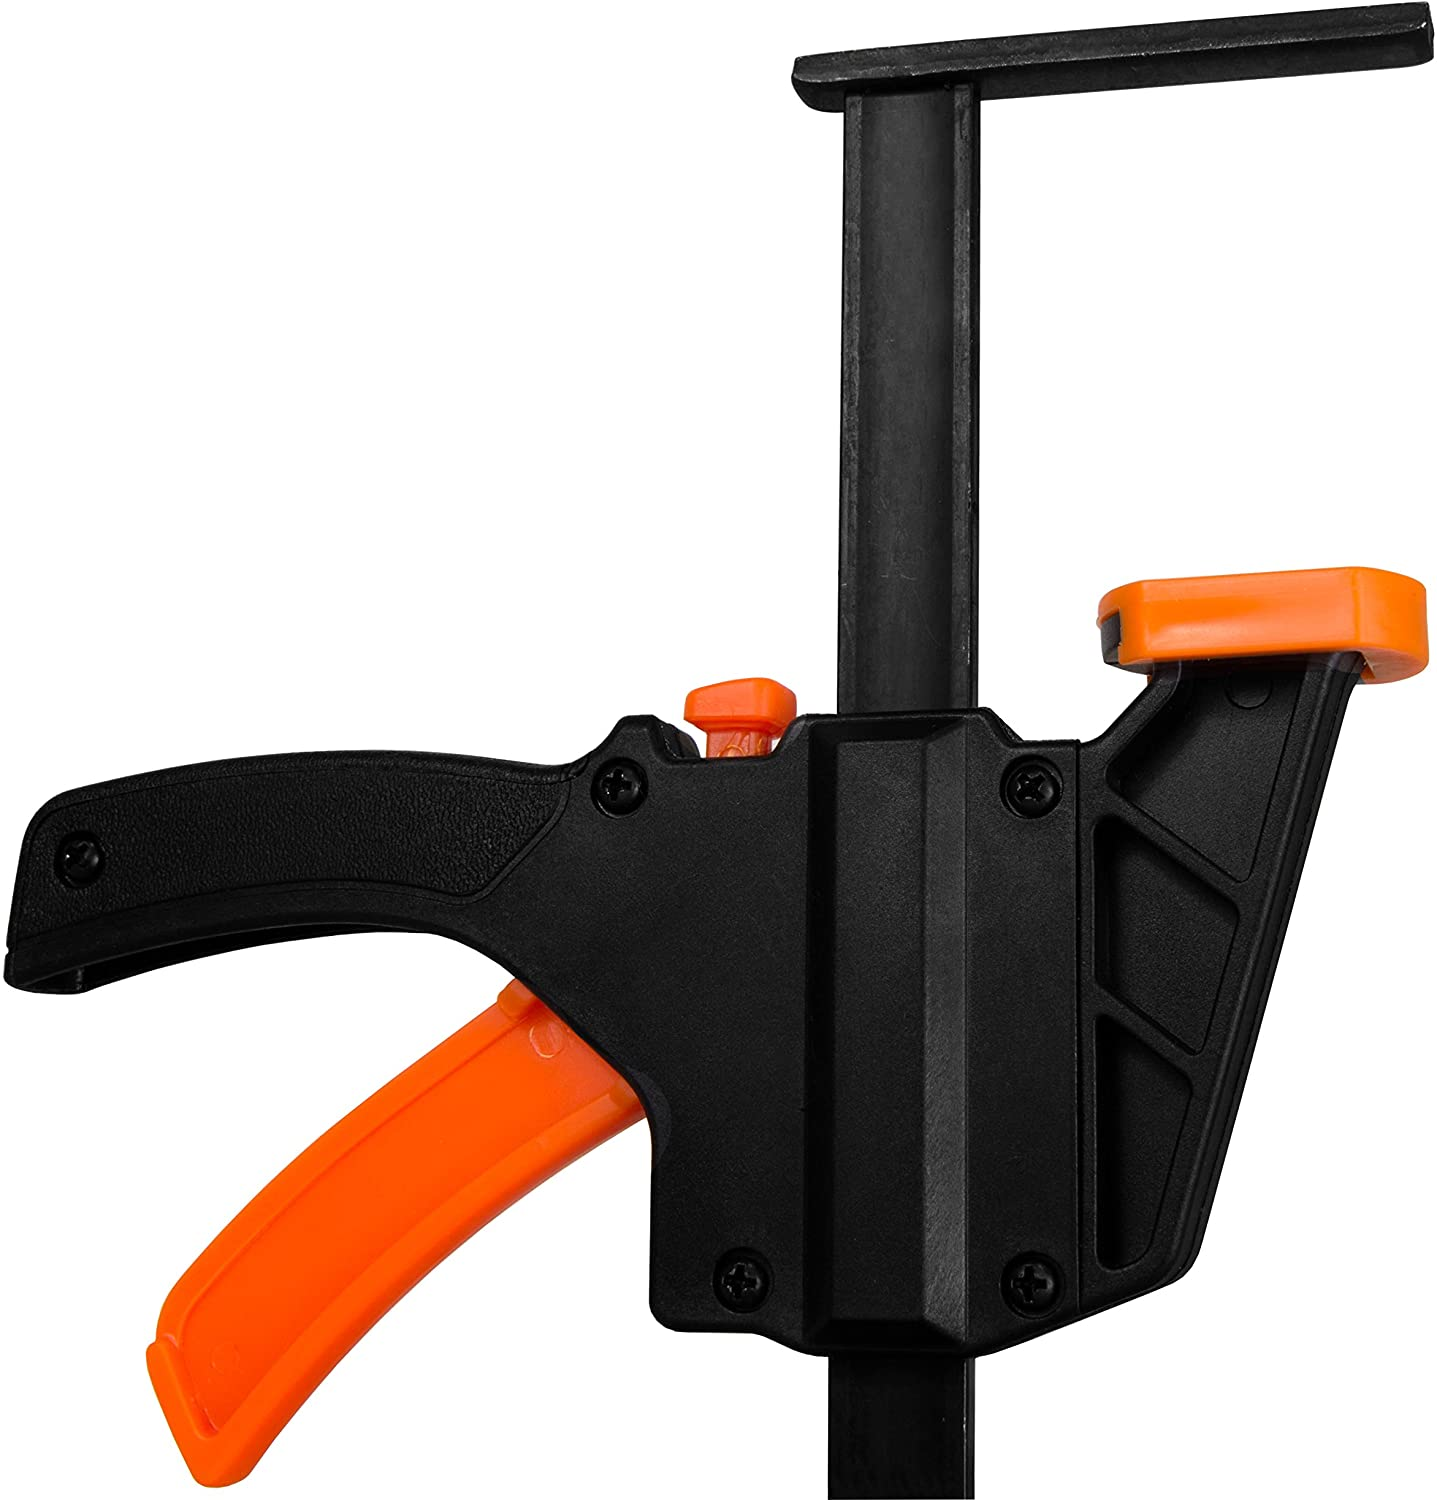 Wen 36053C Saw Clamp